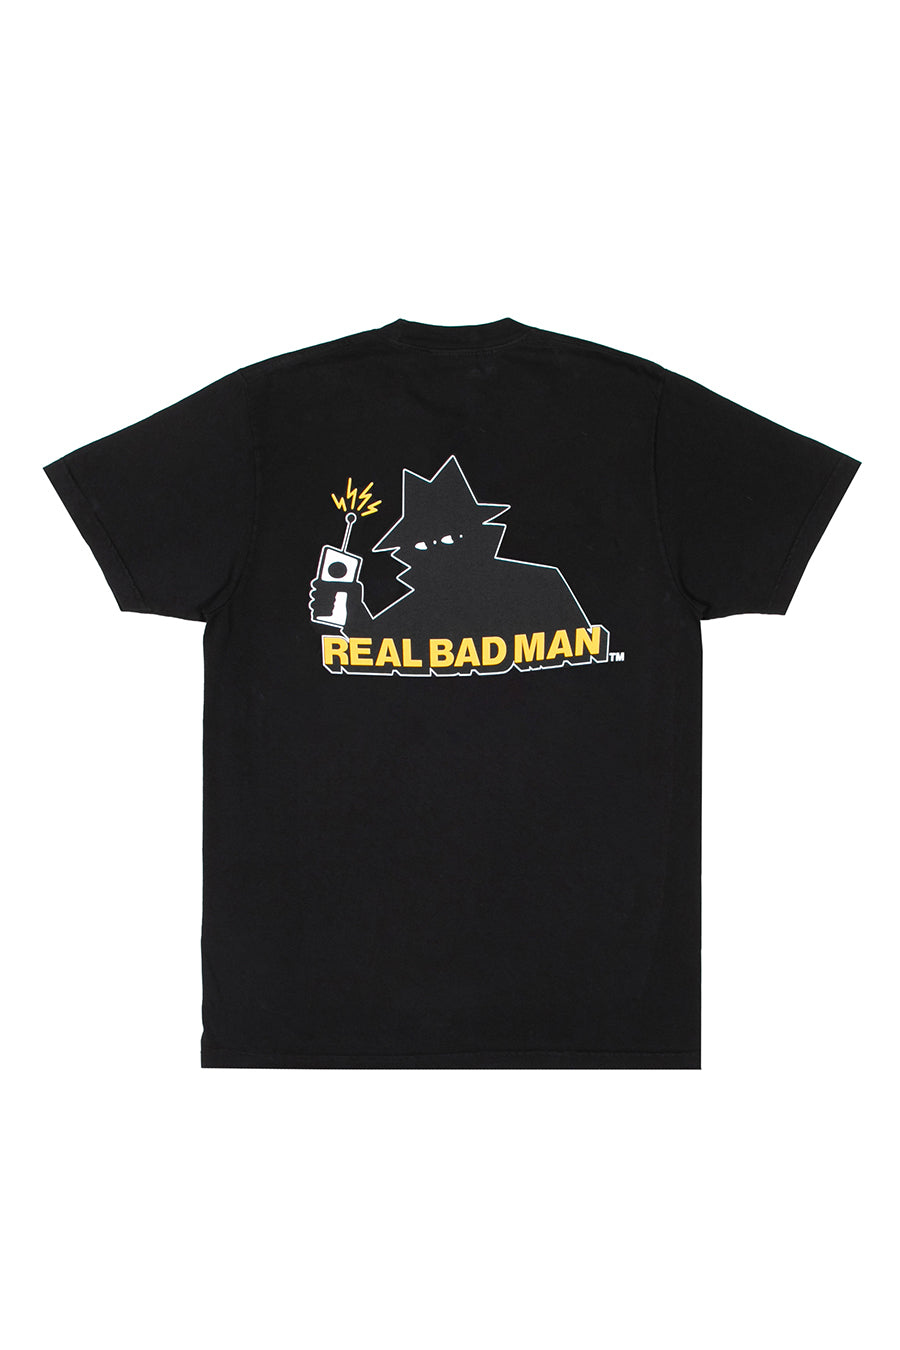 Real Bad Man - Black Logo T-Shirt